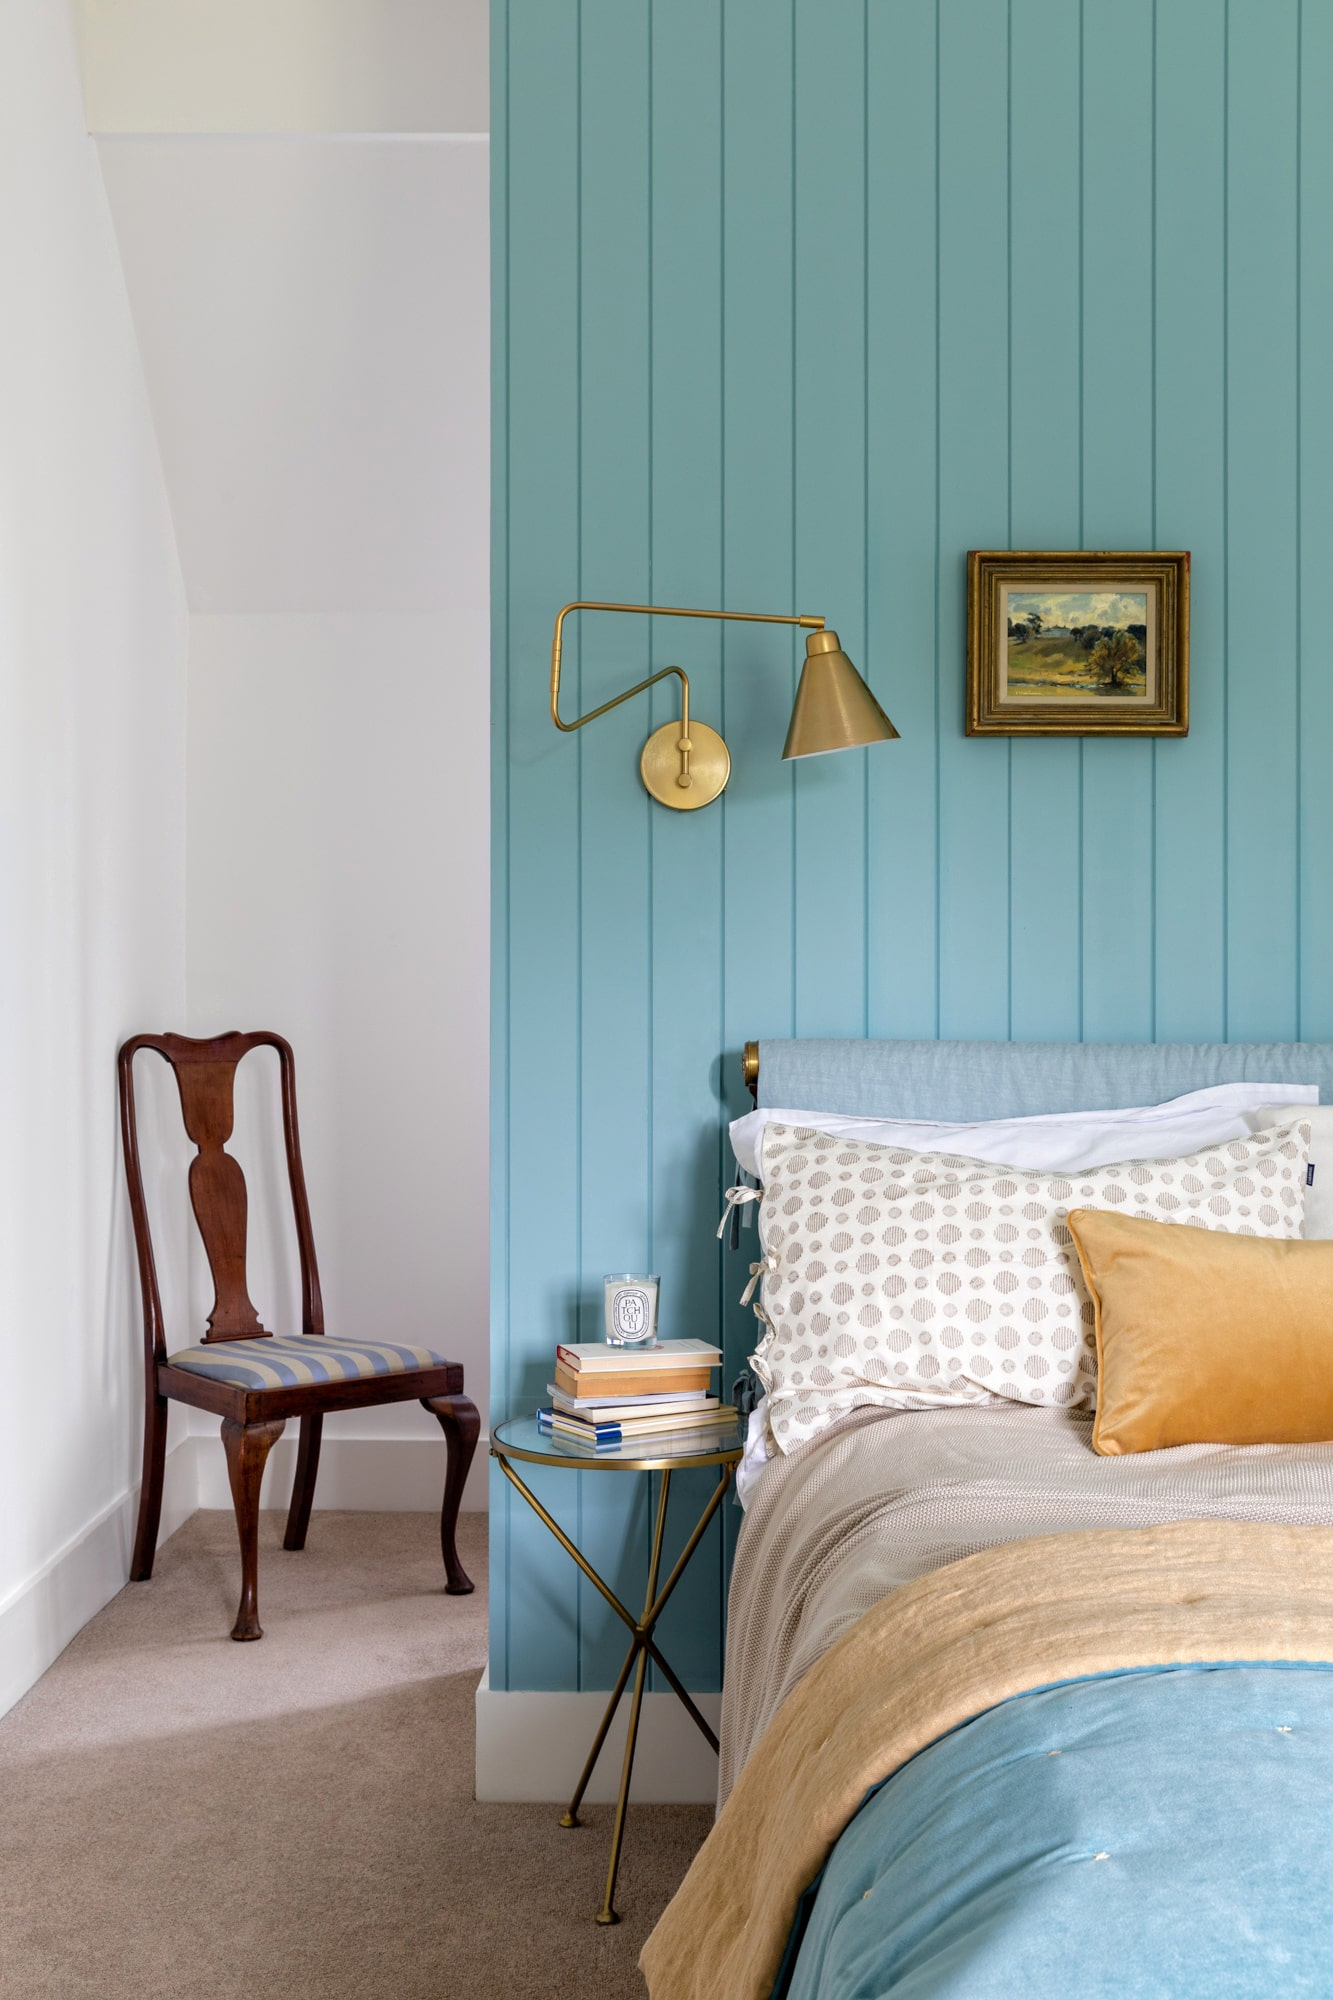 Interior photo: bedroom in a country house with blue wooden paneling, wide bed, gold hanging light on the left side and a chair